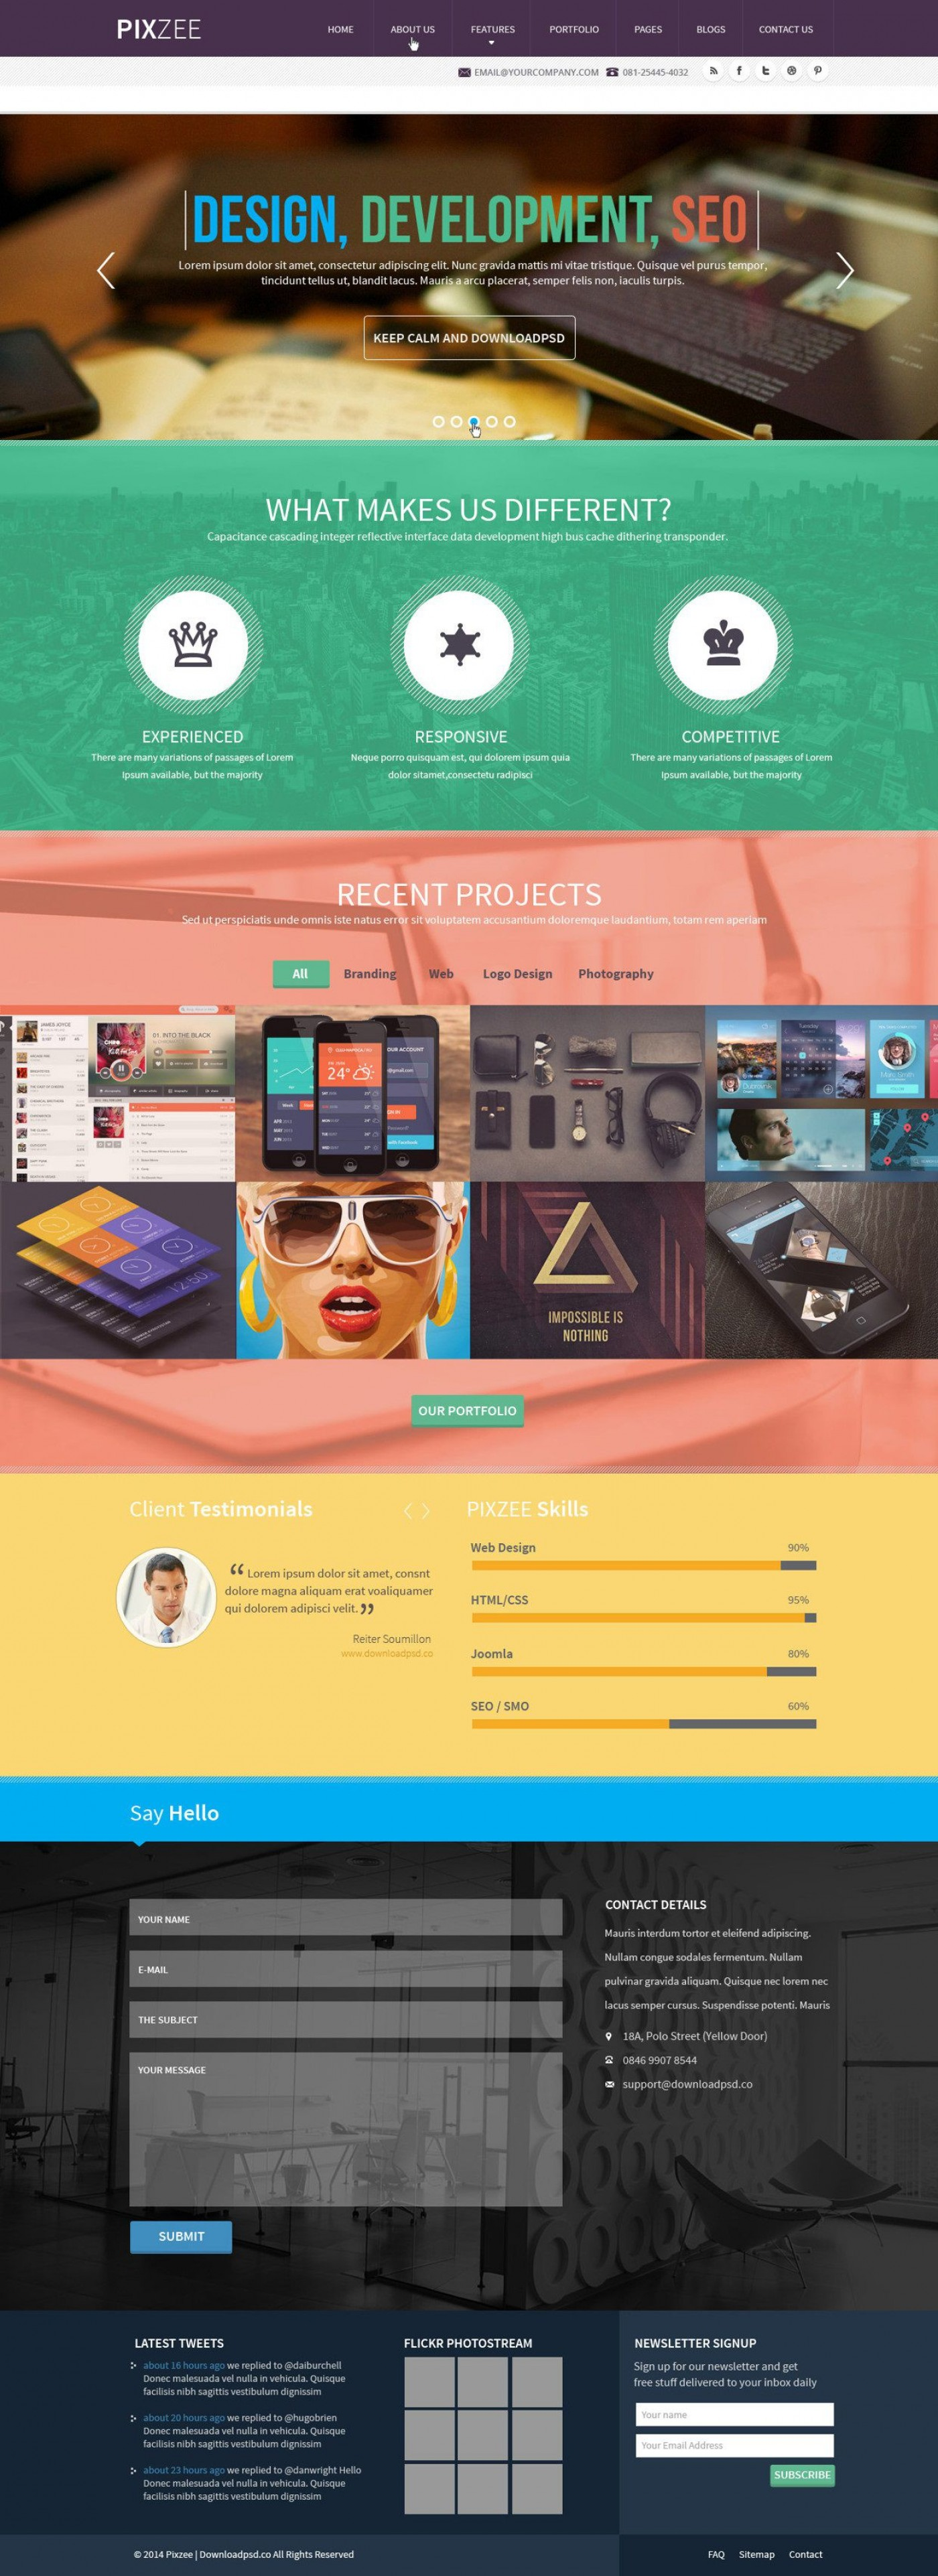 009 Magnificent One Page Website Template Psd Free Download Highest Clarity 1400